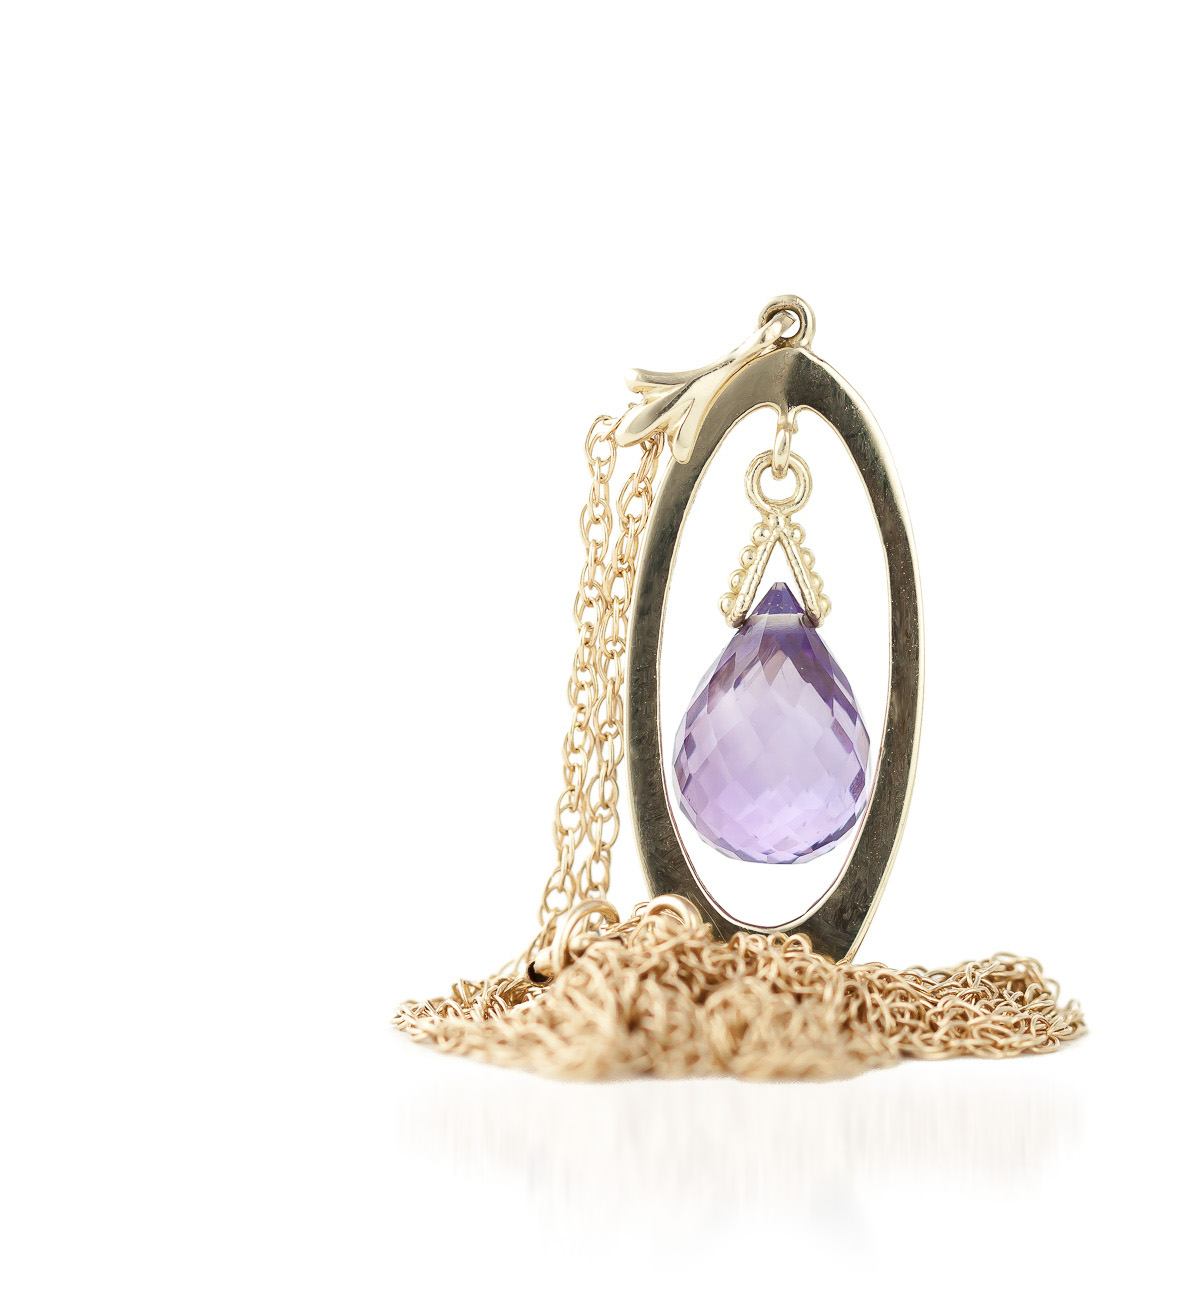 Amethyst Orb Pendant Necklace 0.7 ct in 9ct Gold